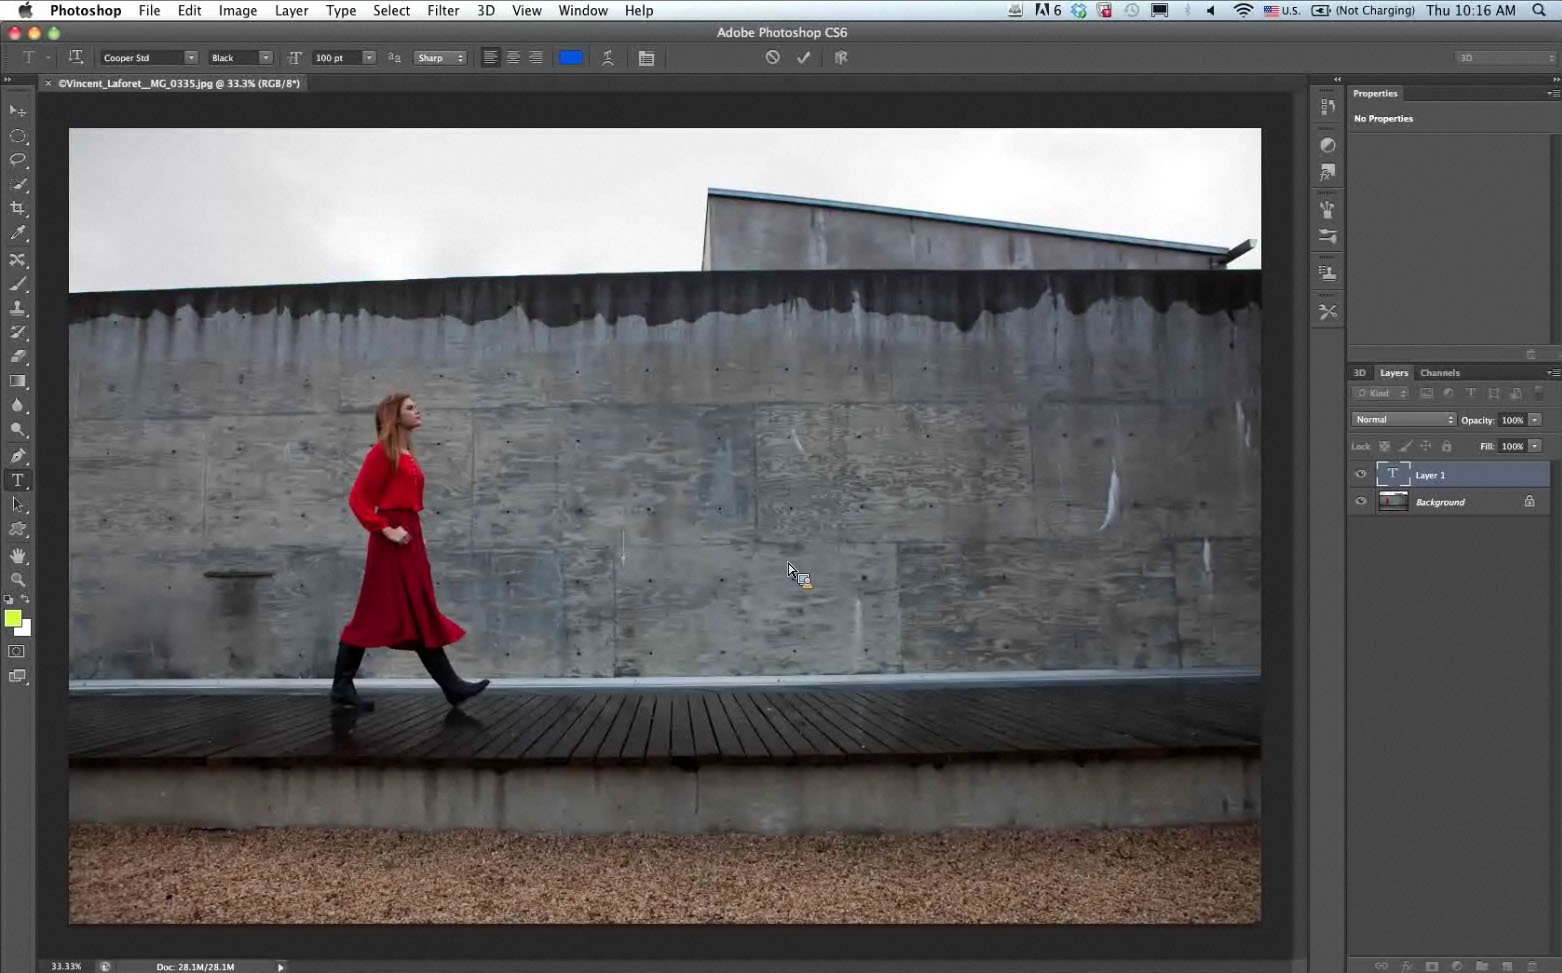 Digital Imaging Software Preview: Adobe Photoshop CS6 Beta